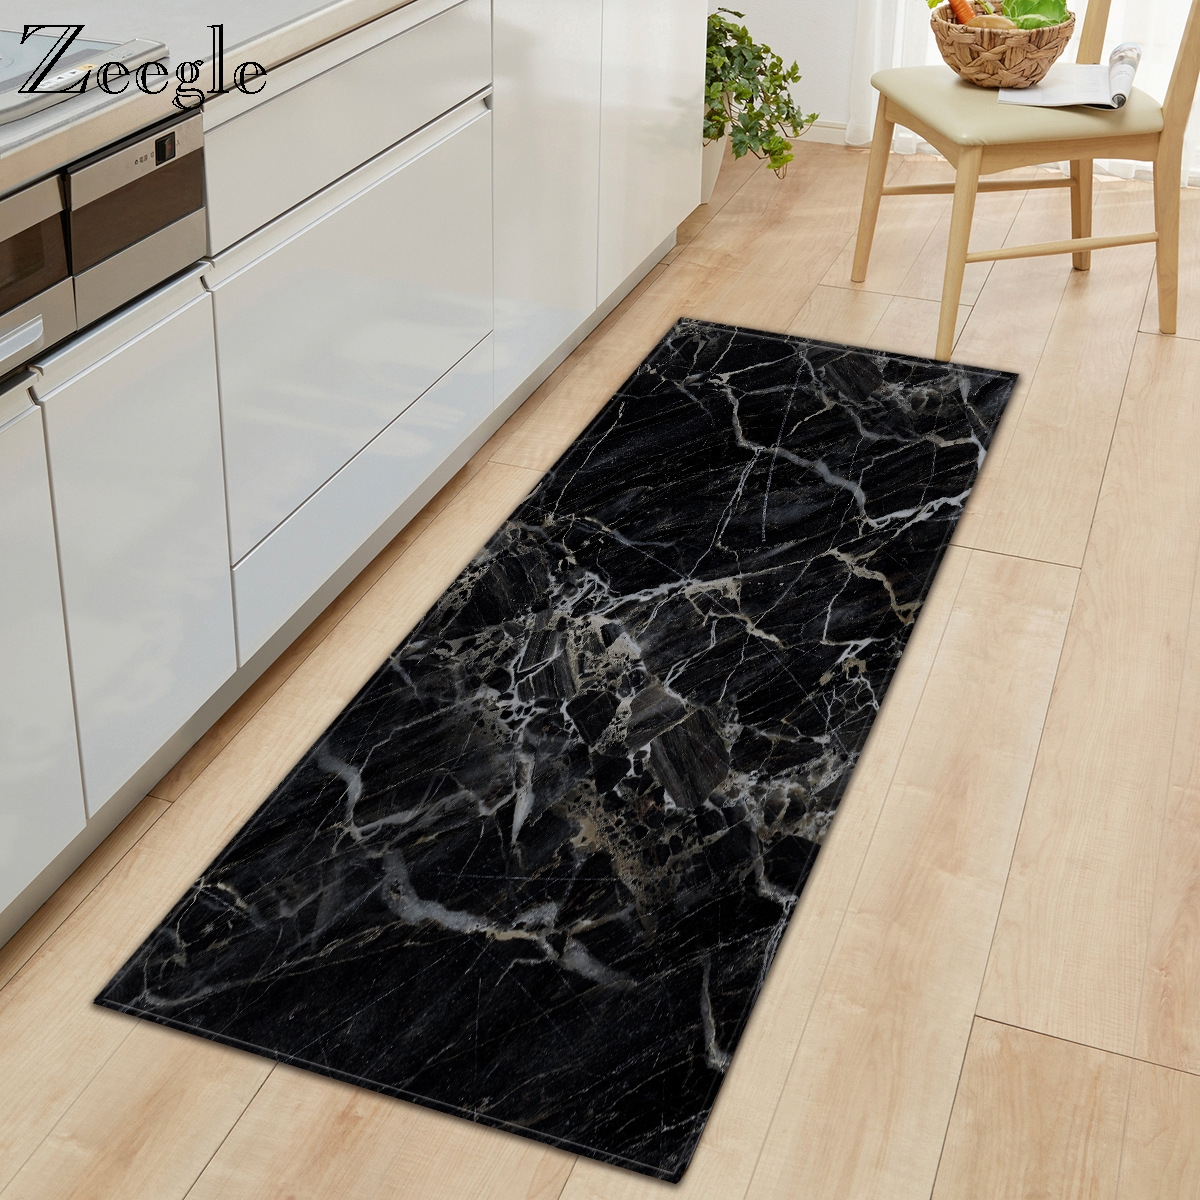 Zeegle Carpet Kitchen Rug Anti Slip Living Room Floor Rug Marble Printed Hallway Carpet Bedroom Doormat Absorbent Bedside Carpet